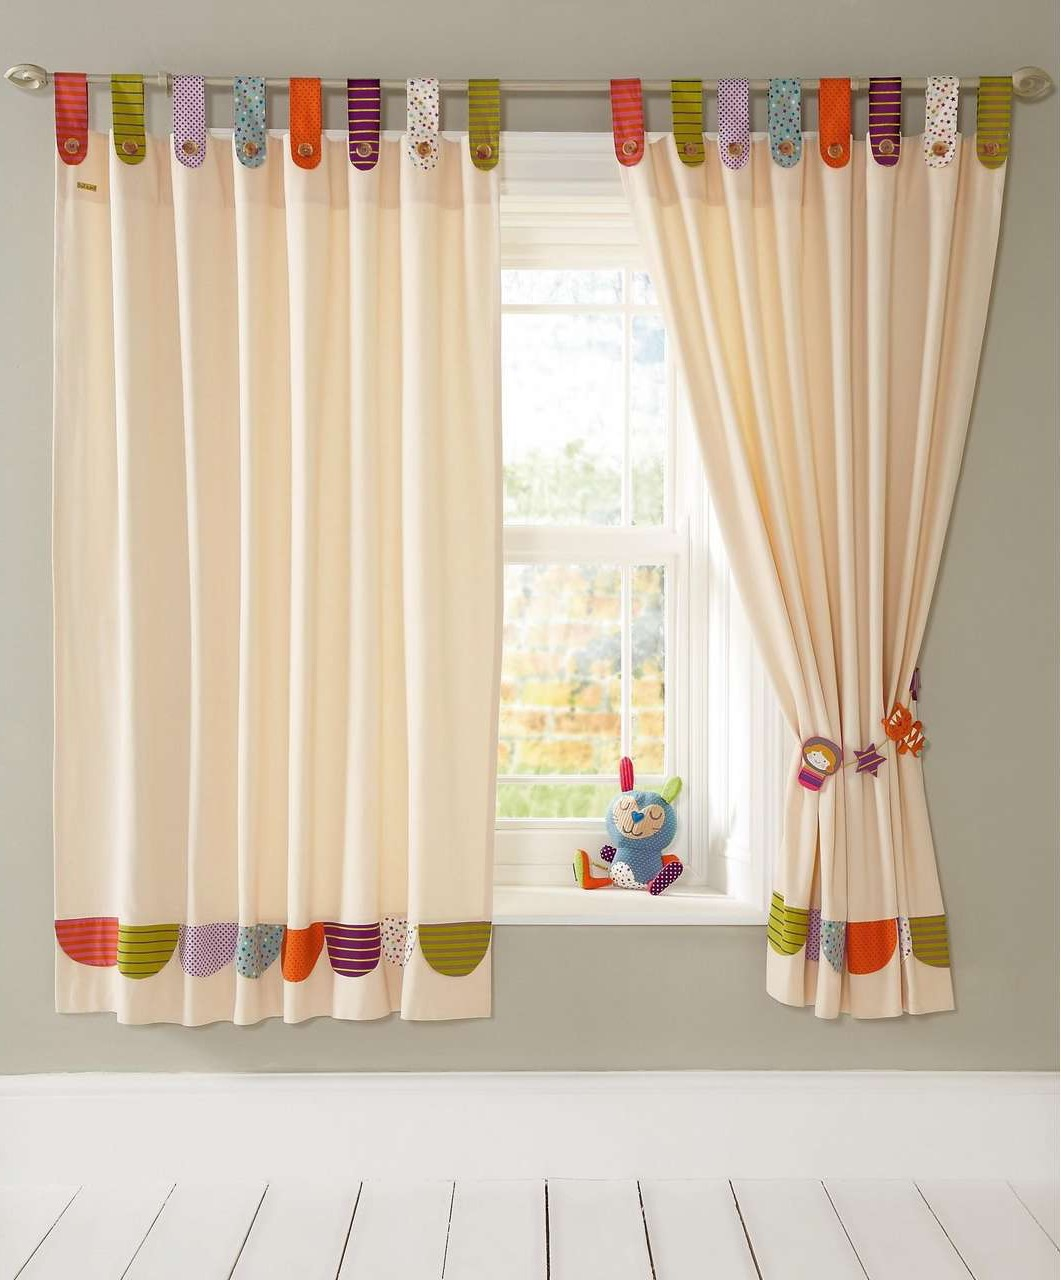 Modern Cute Nursery Curtains (View 10 of 12)